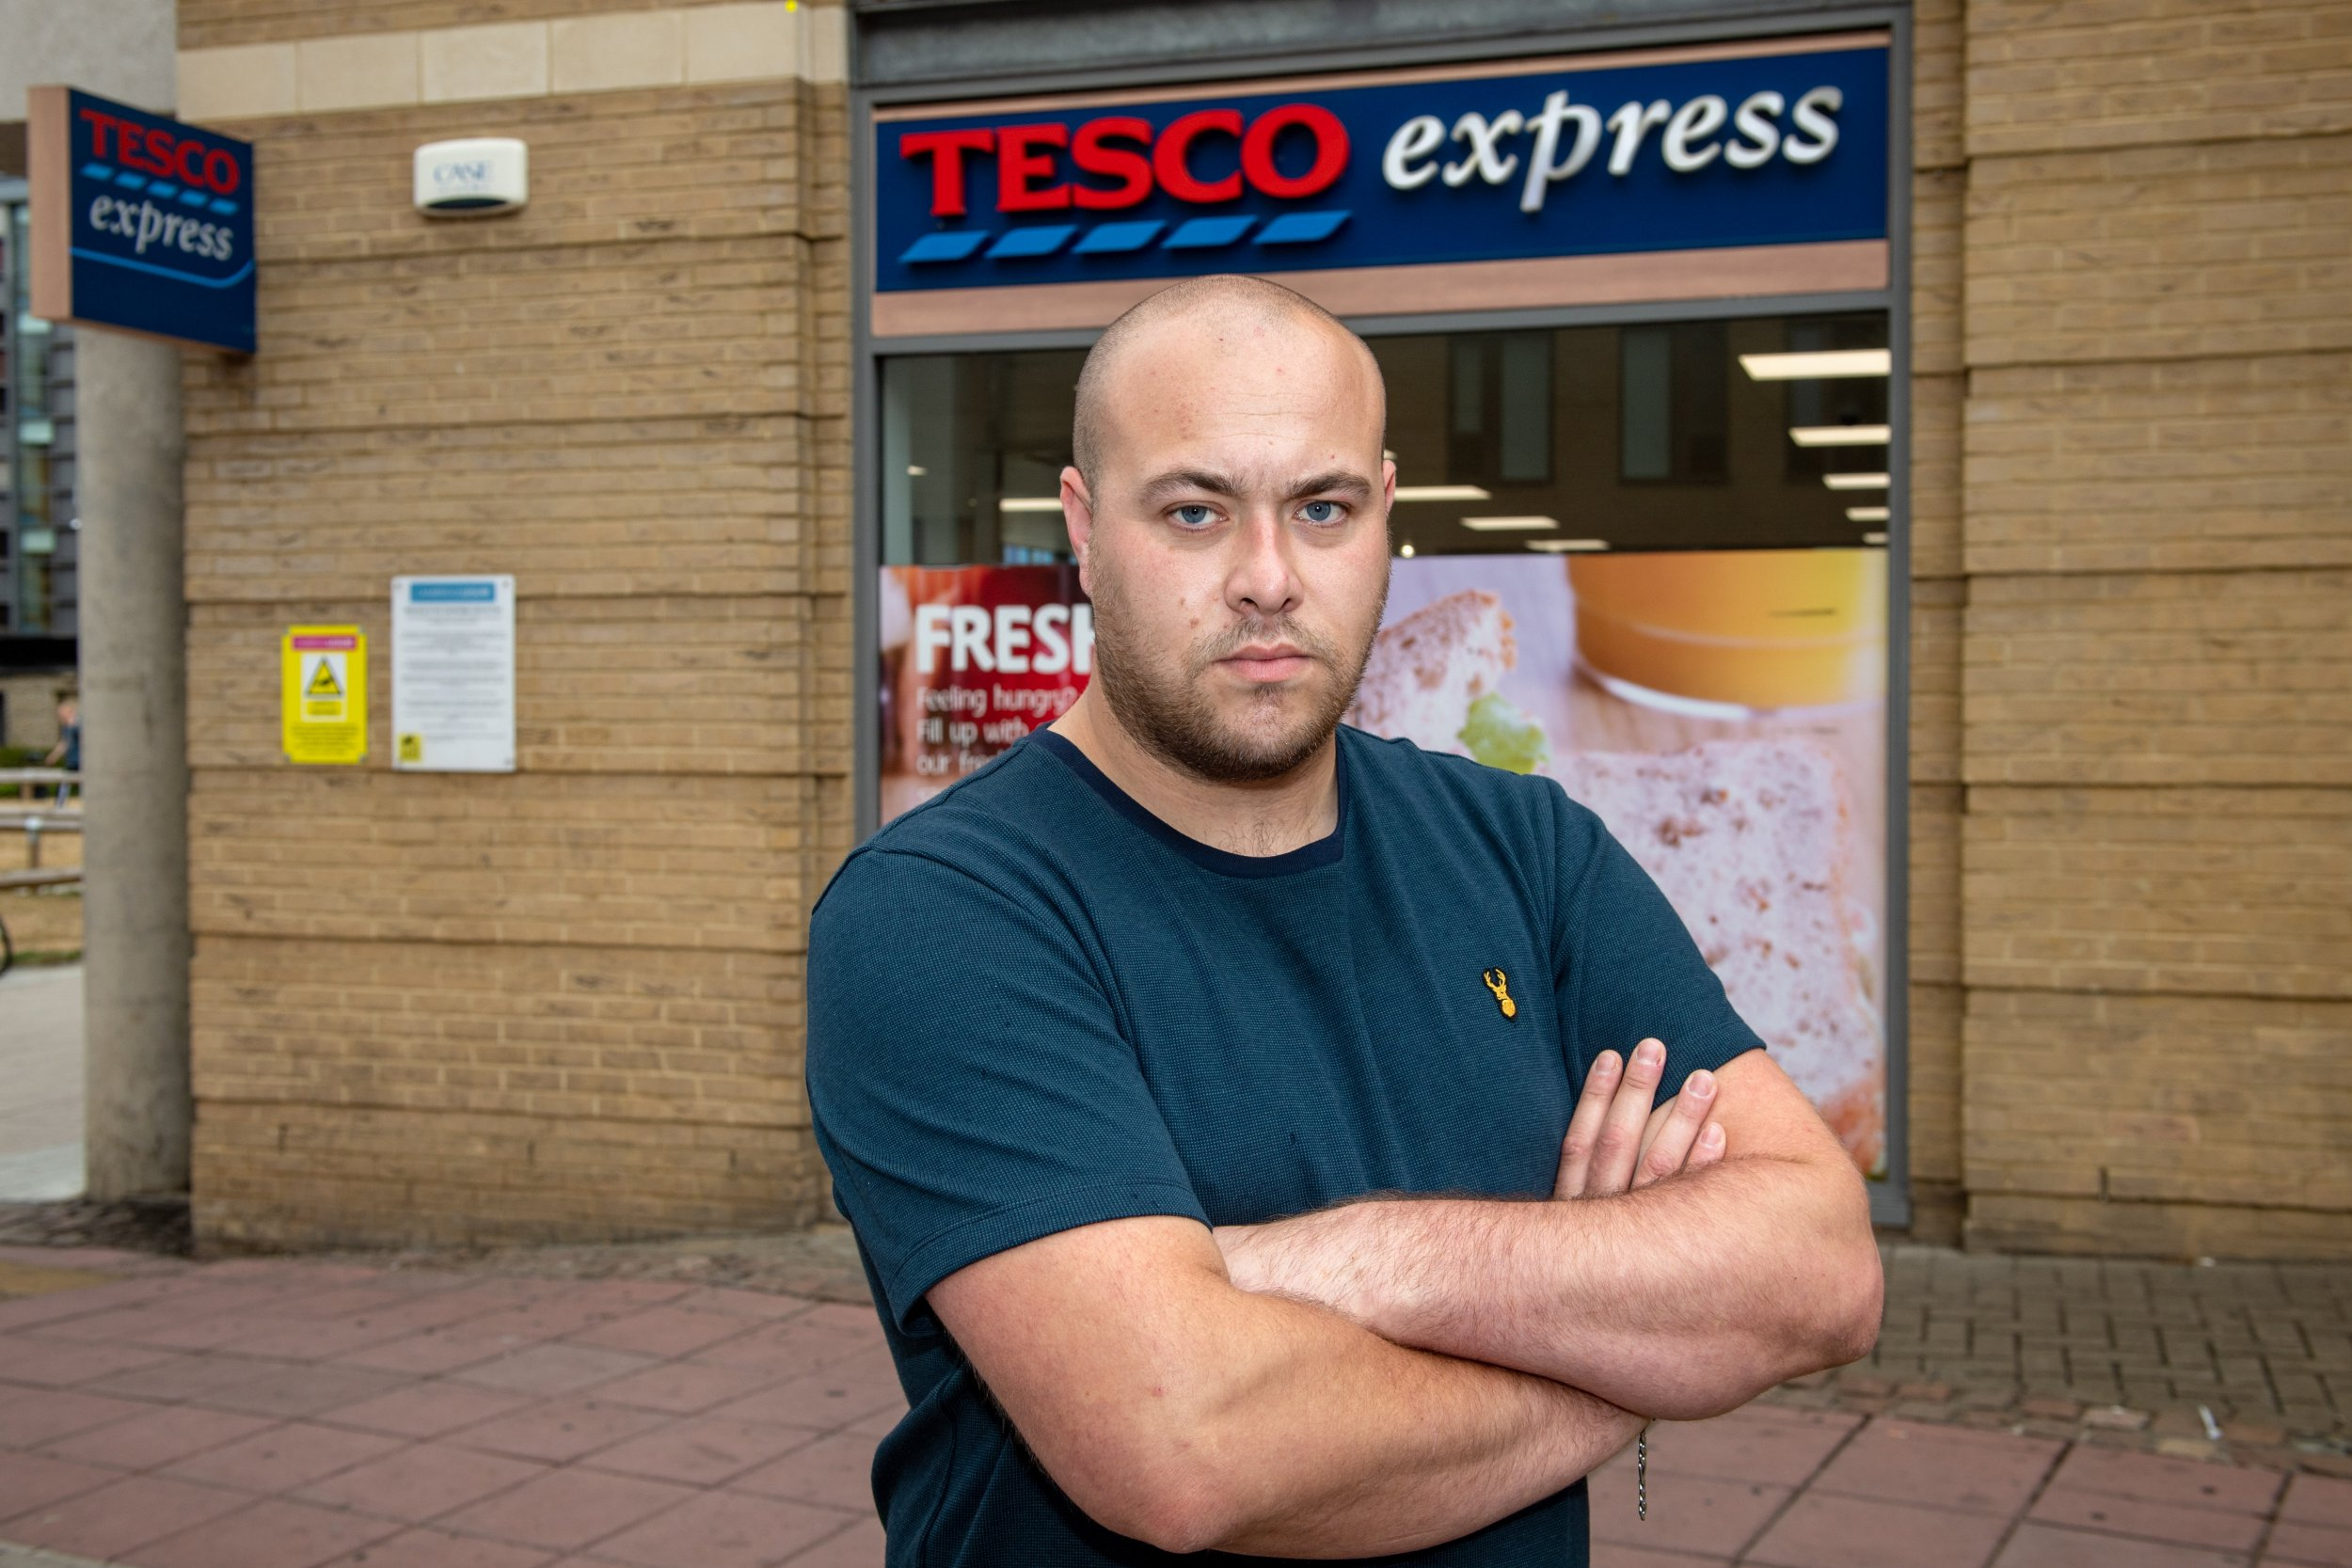 Topless man buying ice cream claims he was chucked out of Tesco for being too fat